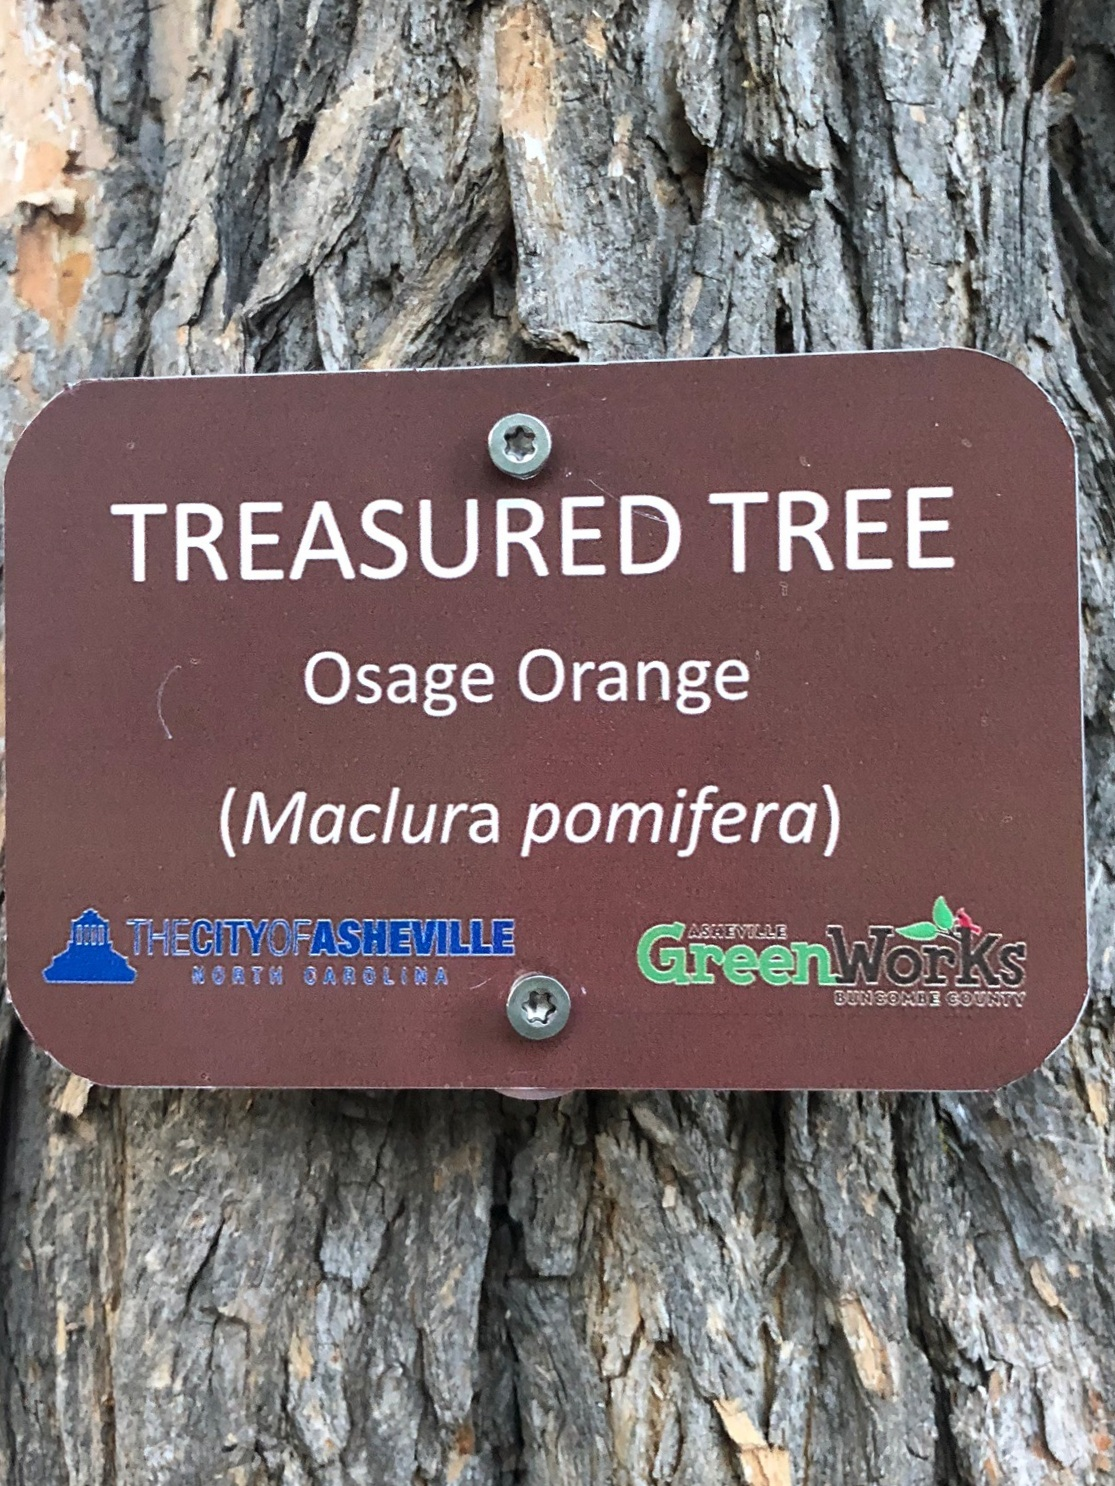 Treasured Tree